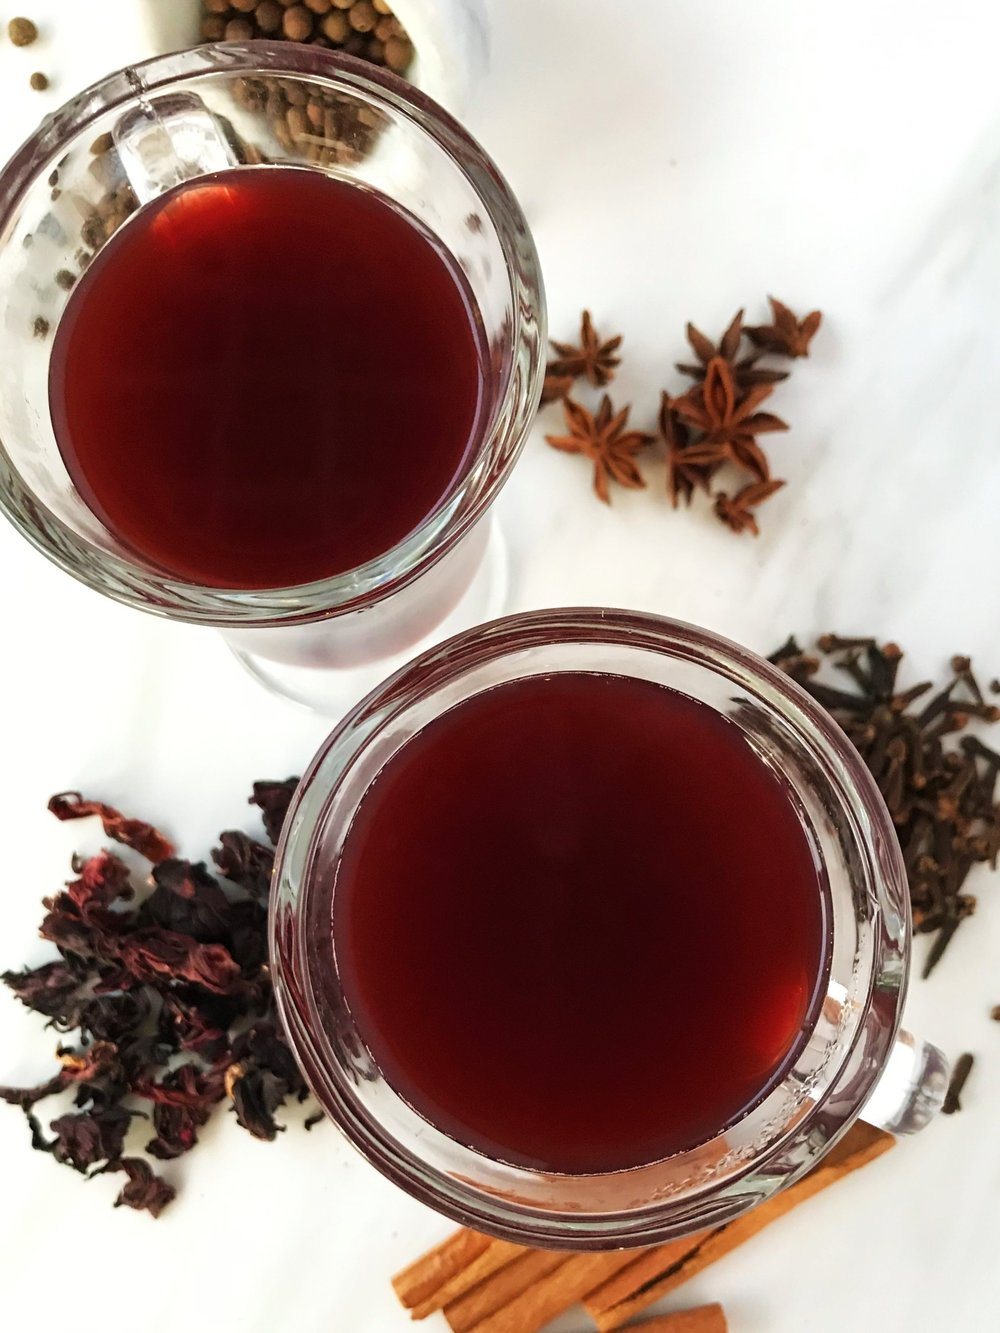 Hibiscus Mulled Cider photographed in our Adventure Kitchen Pop-Up Spice Shop. We infuse apple cider with hibiscus flowers and classic mulling spices for a warm and tasty drink on a cold day.